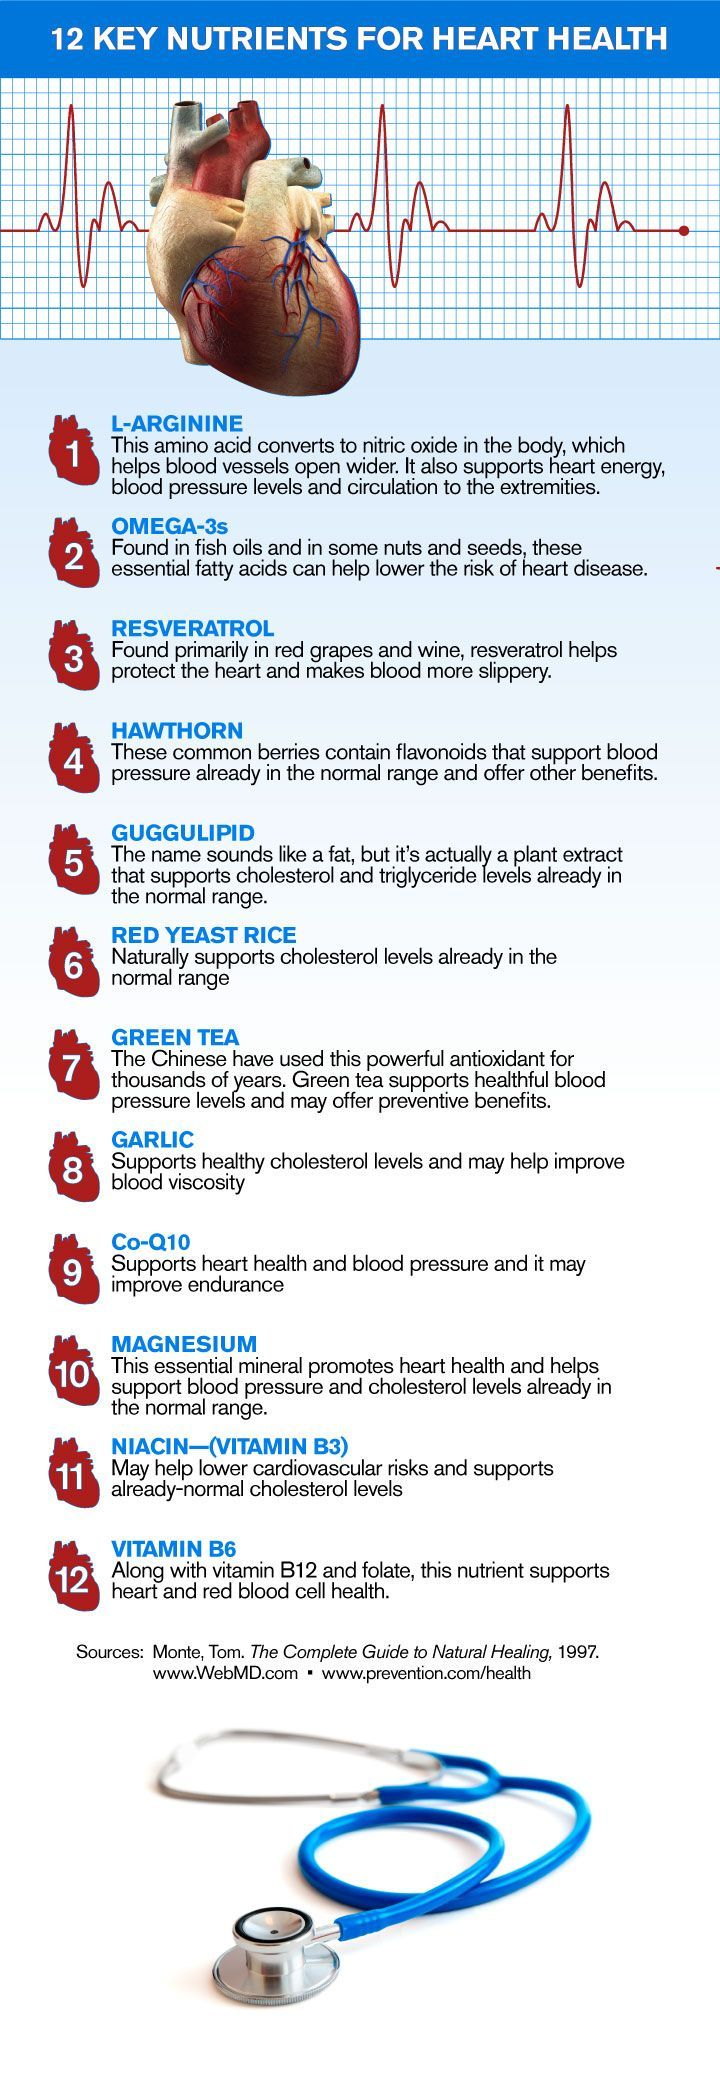 12 Key Nutrients for Heart Health Health